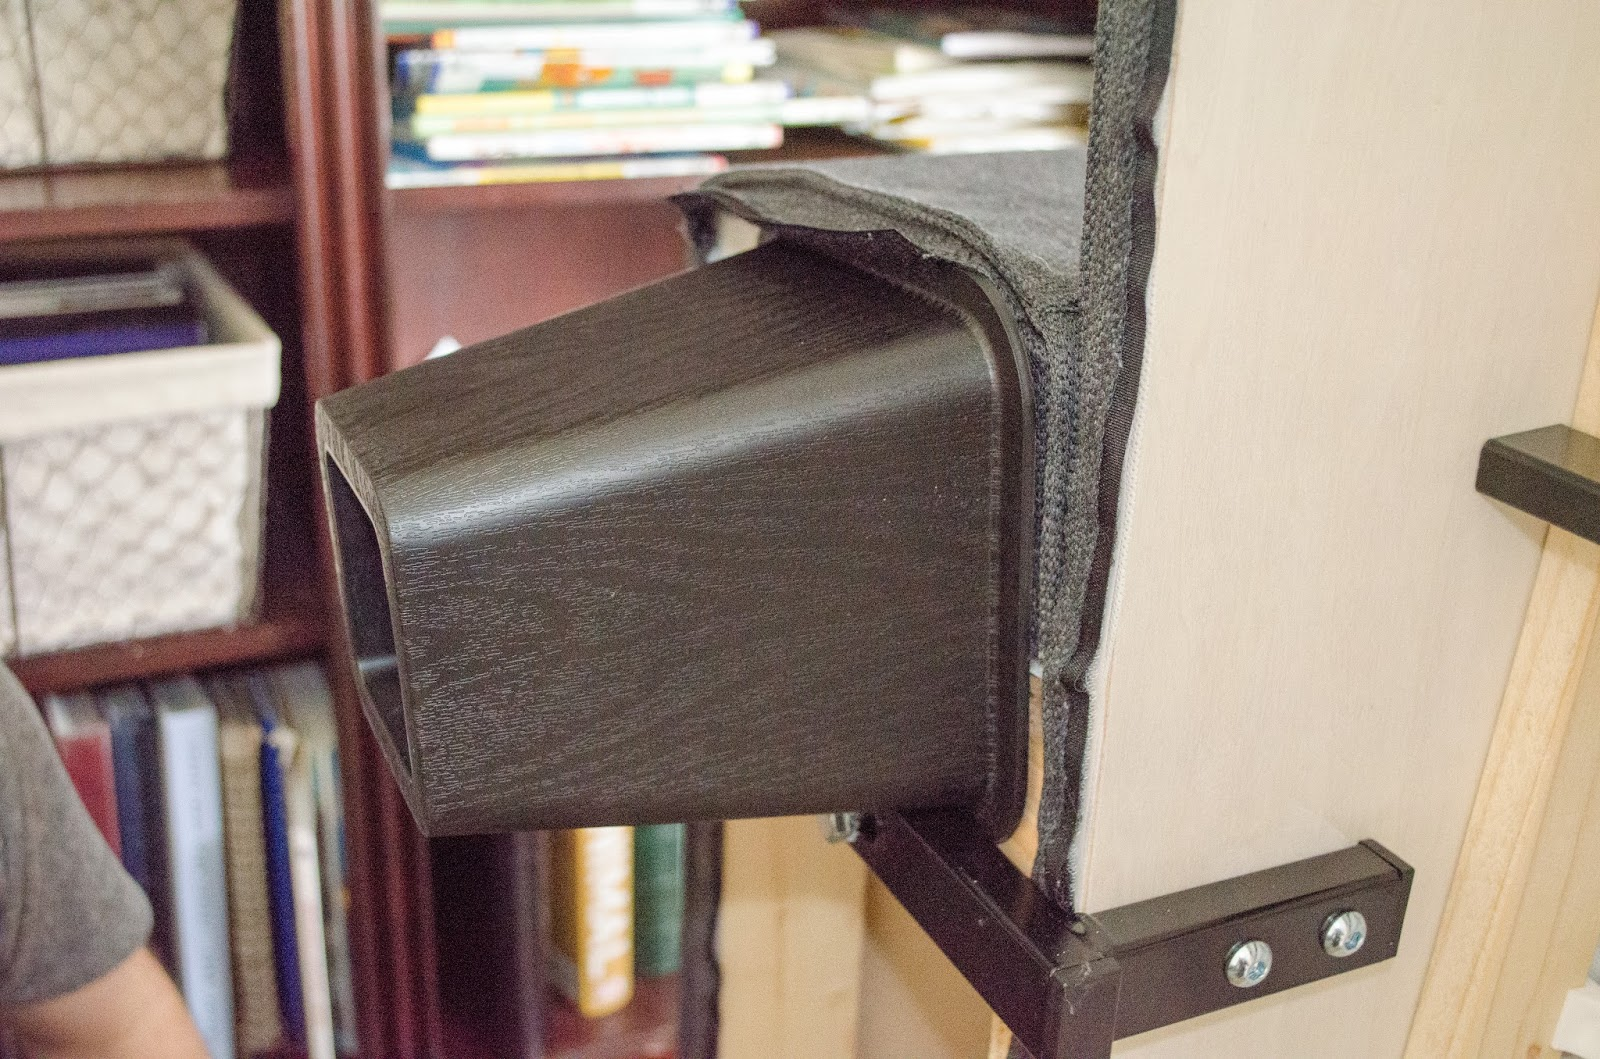 Sofa Leg Risers Furniture Risers By Stander Elevelate A Bed Couch Or Chair Thesofa